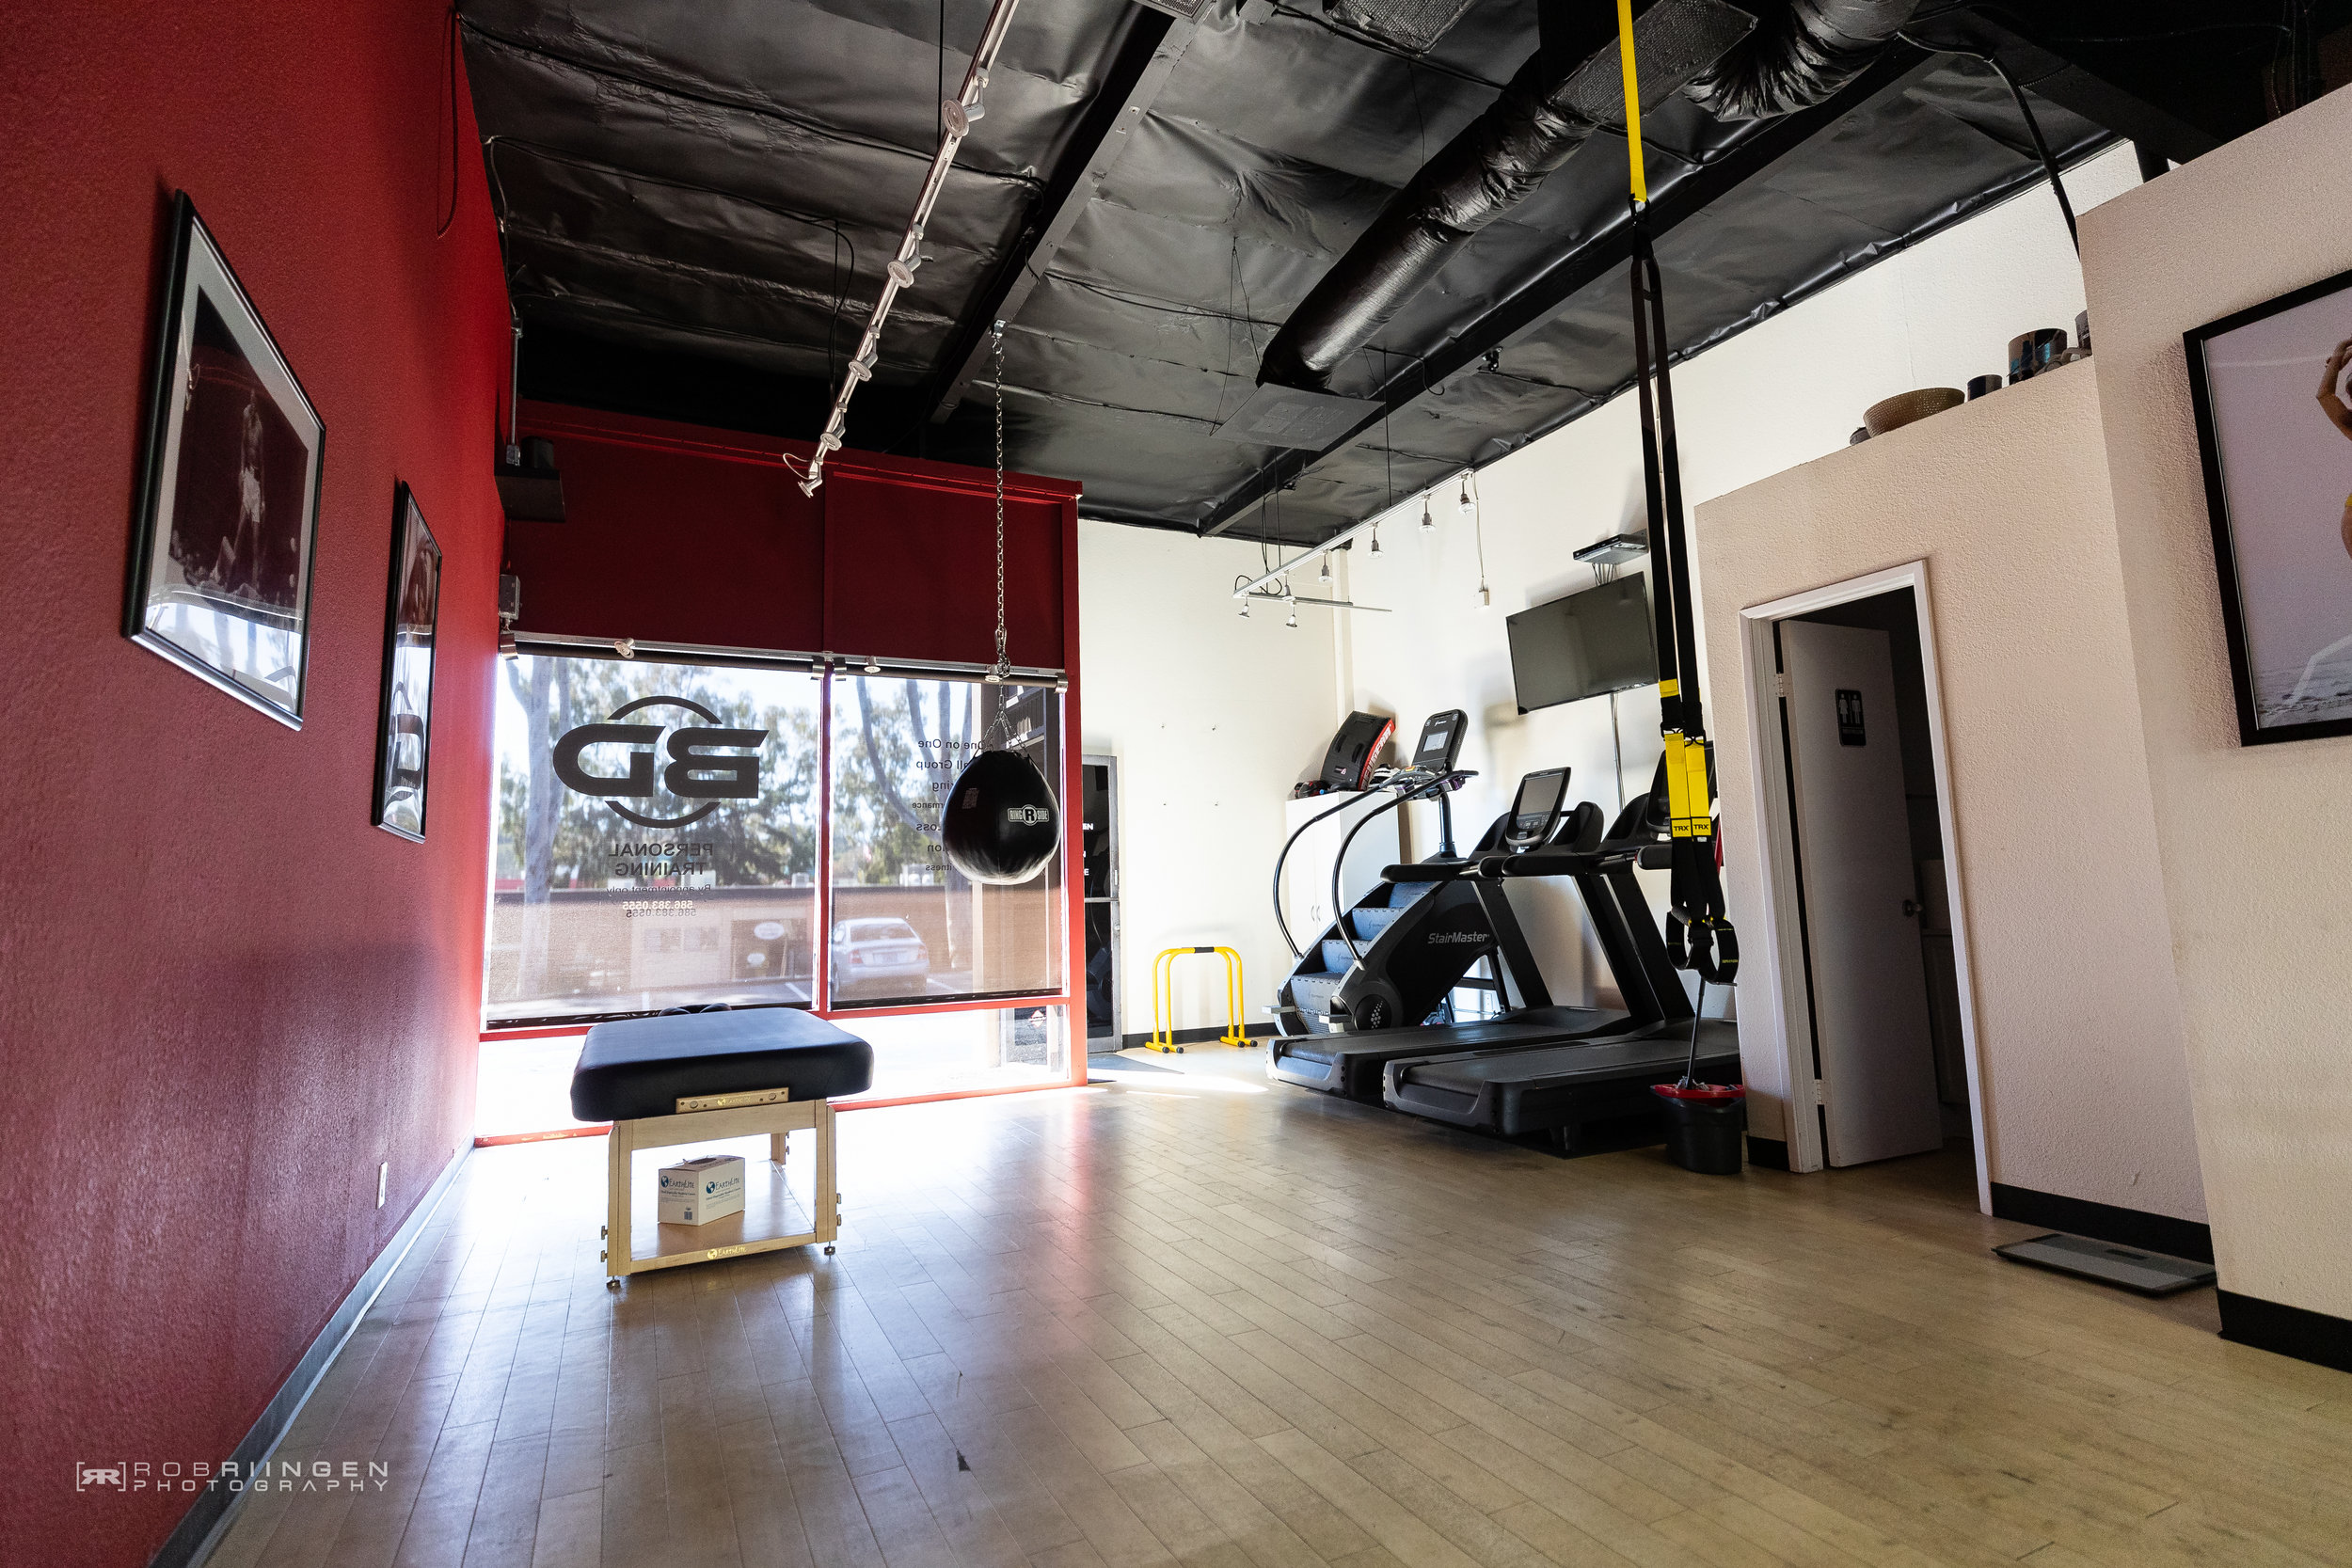 Results Driven - Experienced trainers providing exceptional, results driven workouts that push you out of your comfort zone to yield impeccable results.